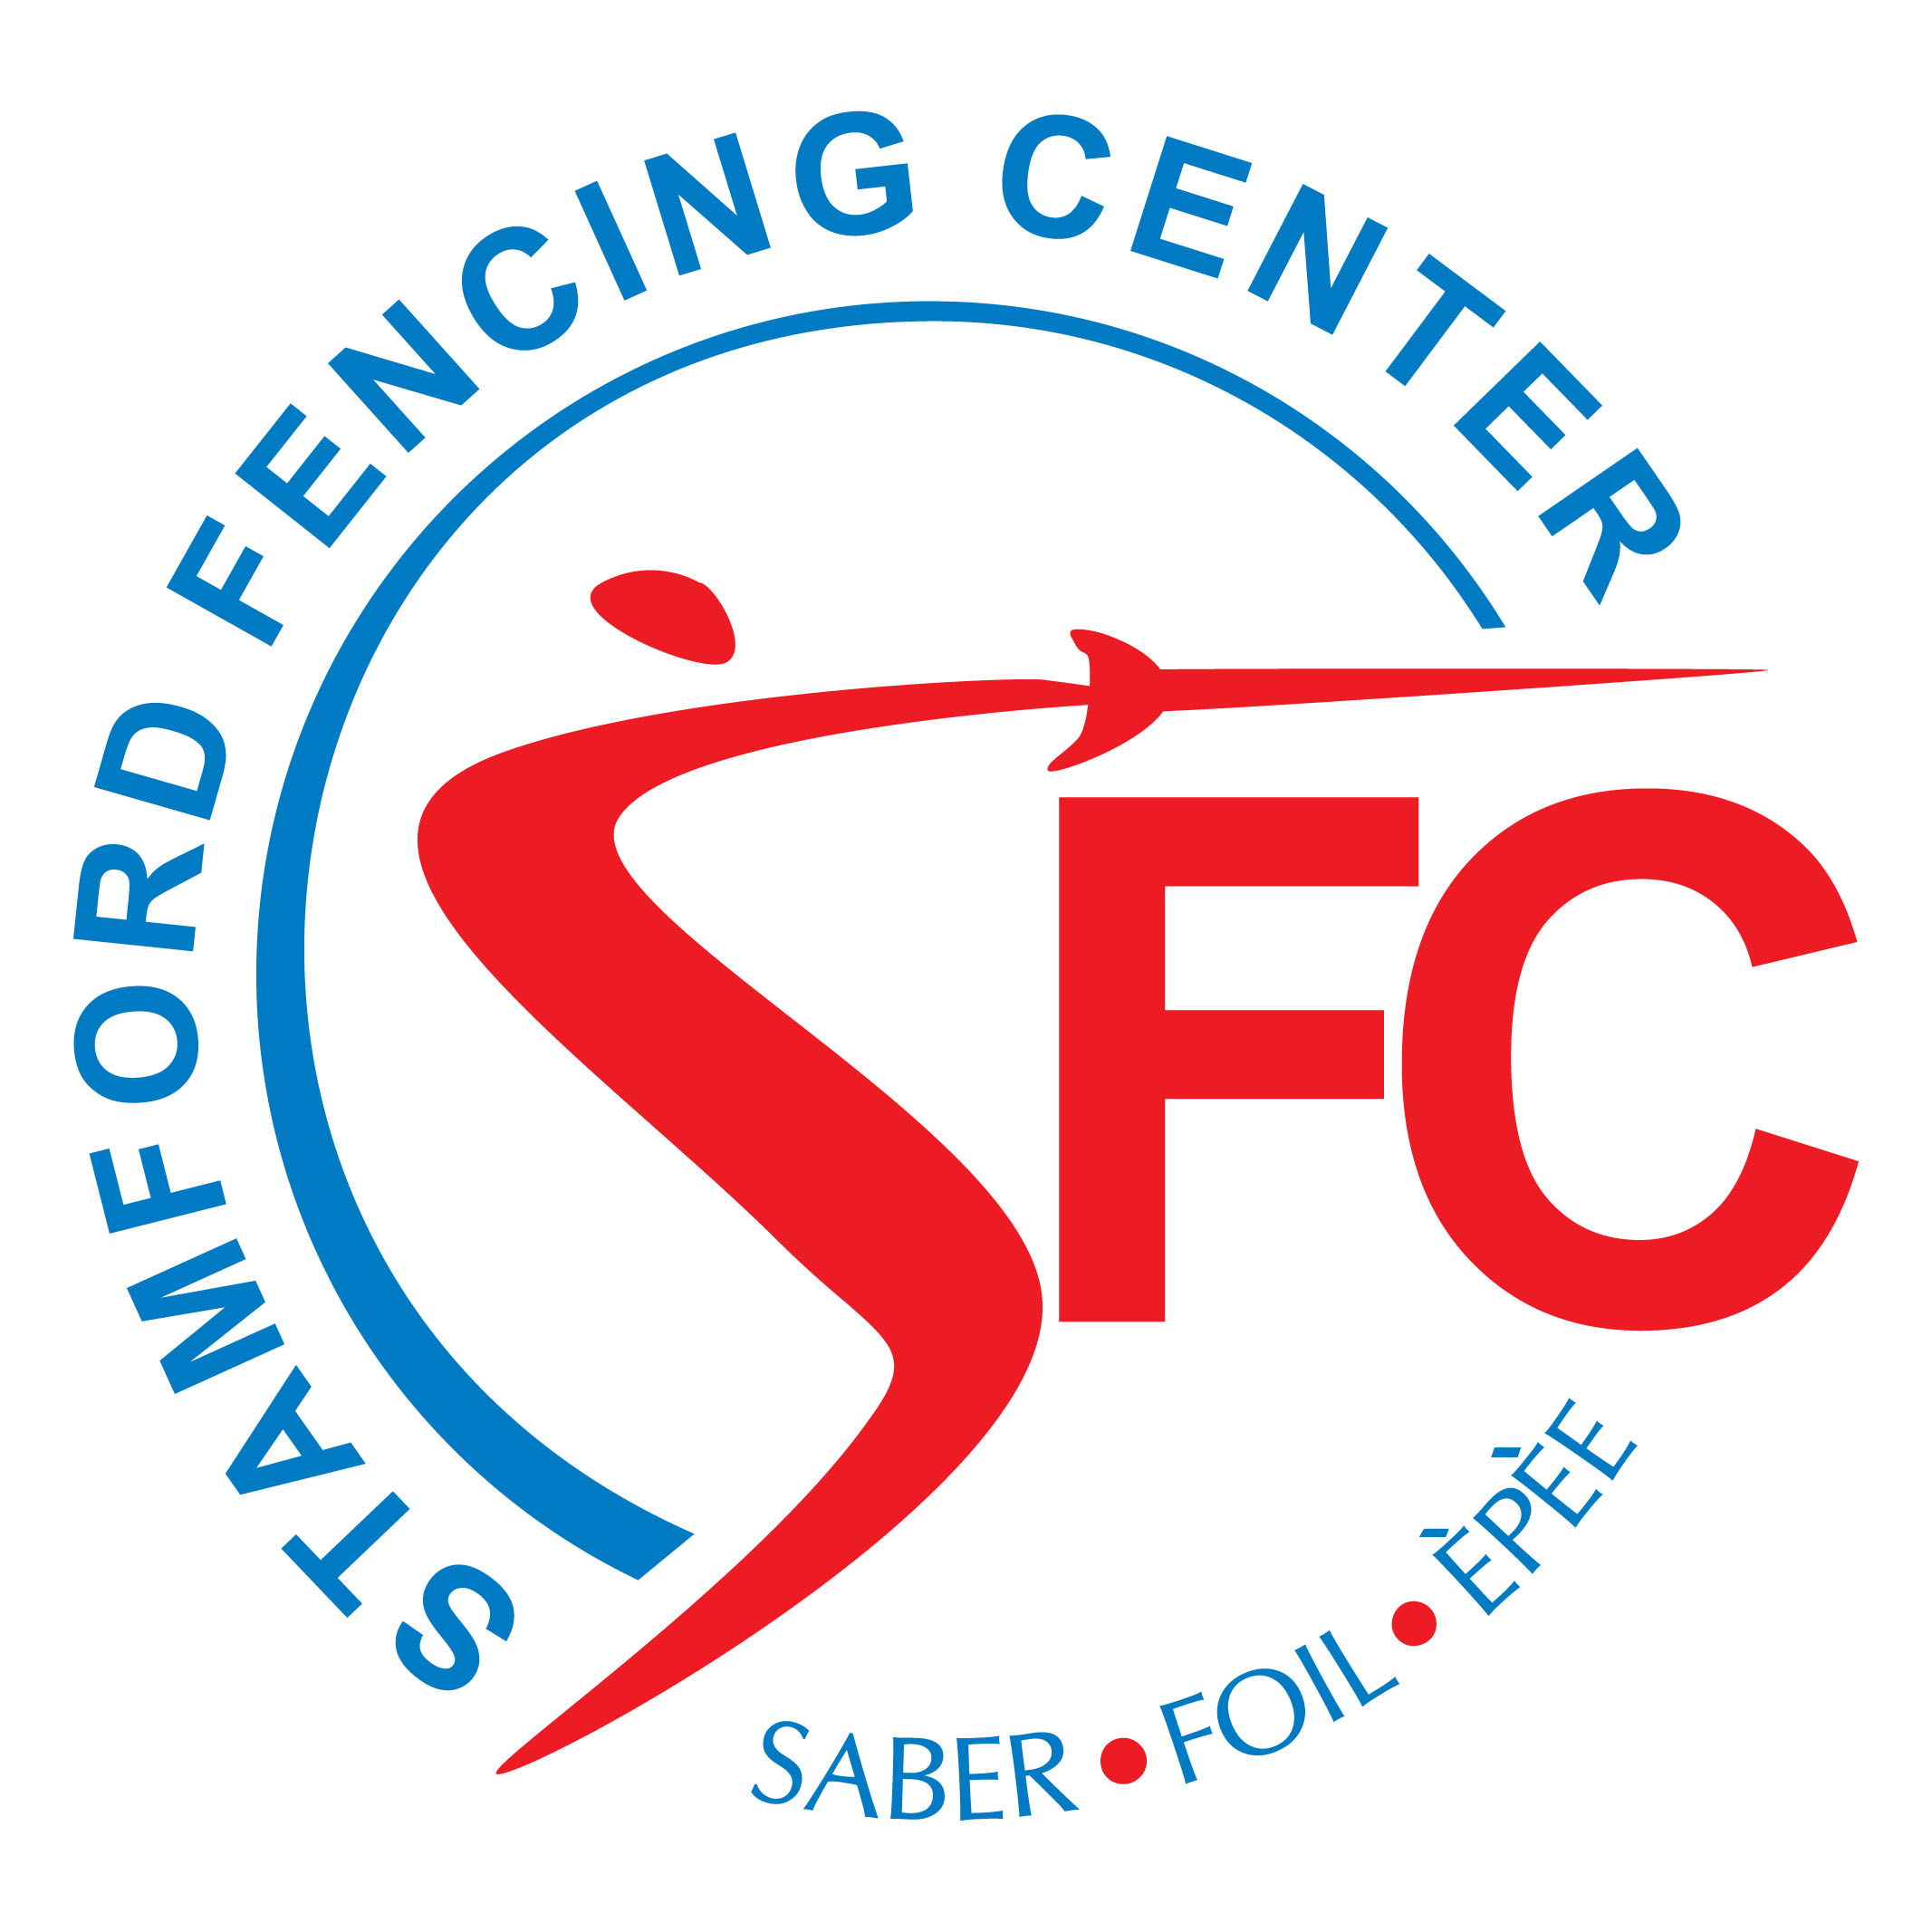 Stamford Fencing Center, LLC